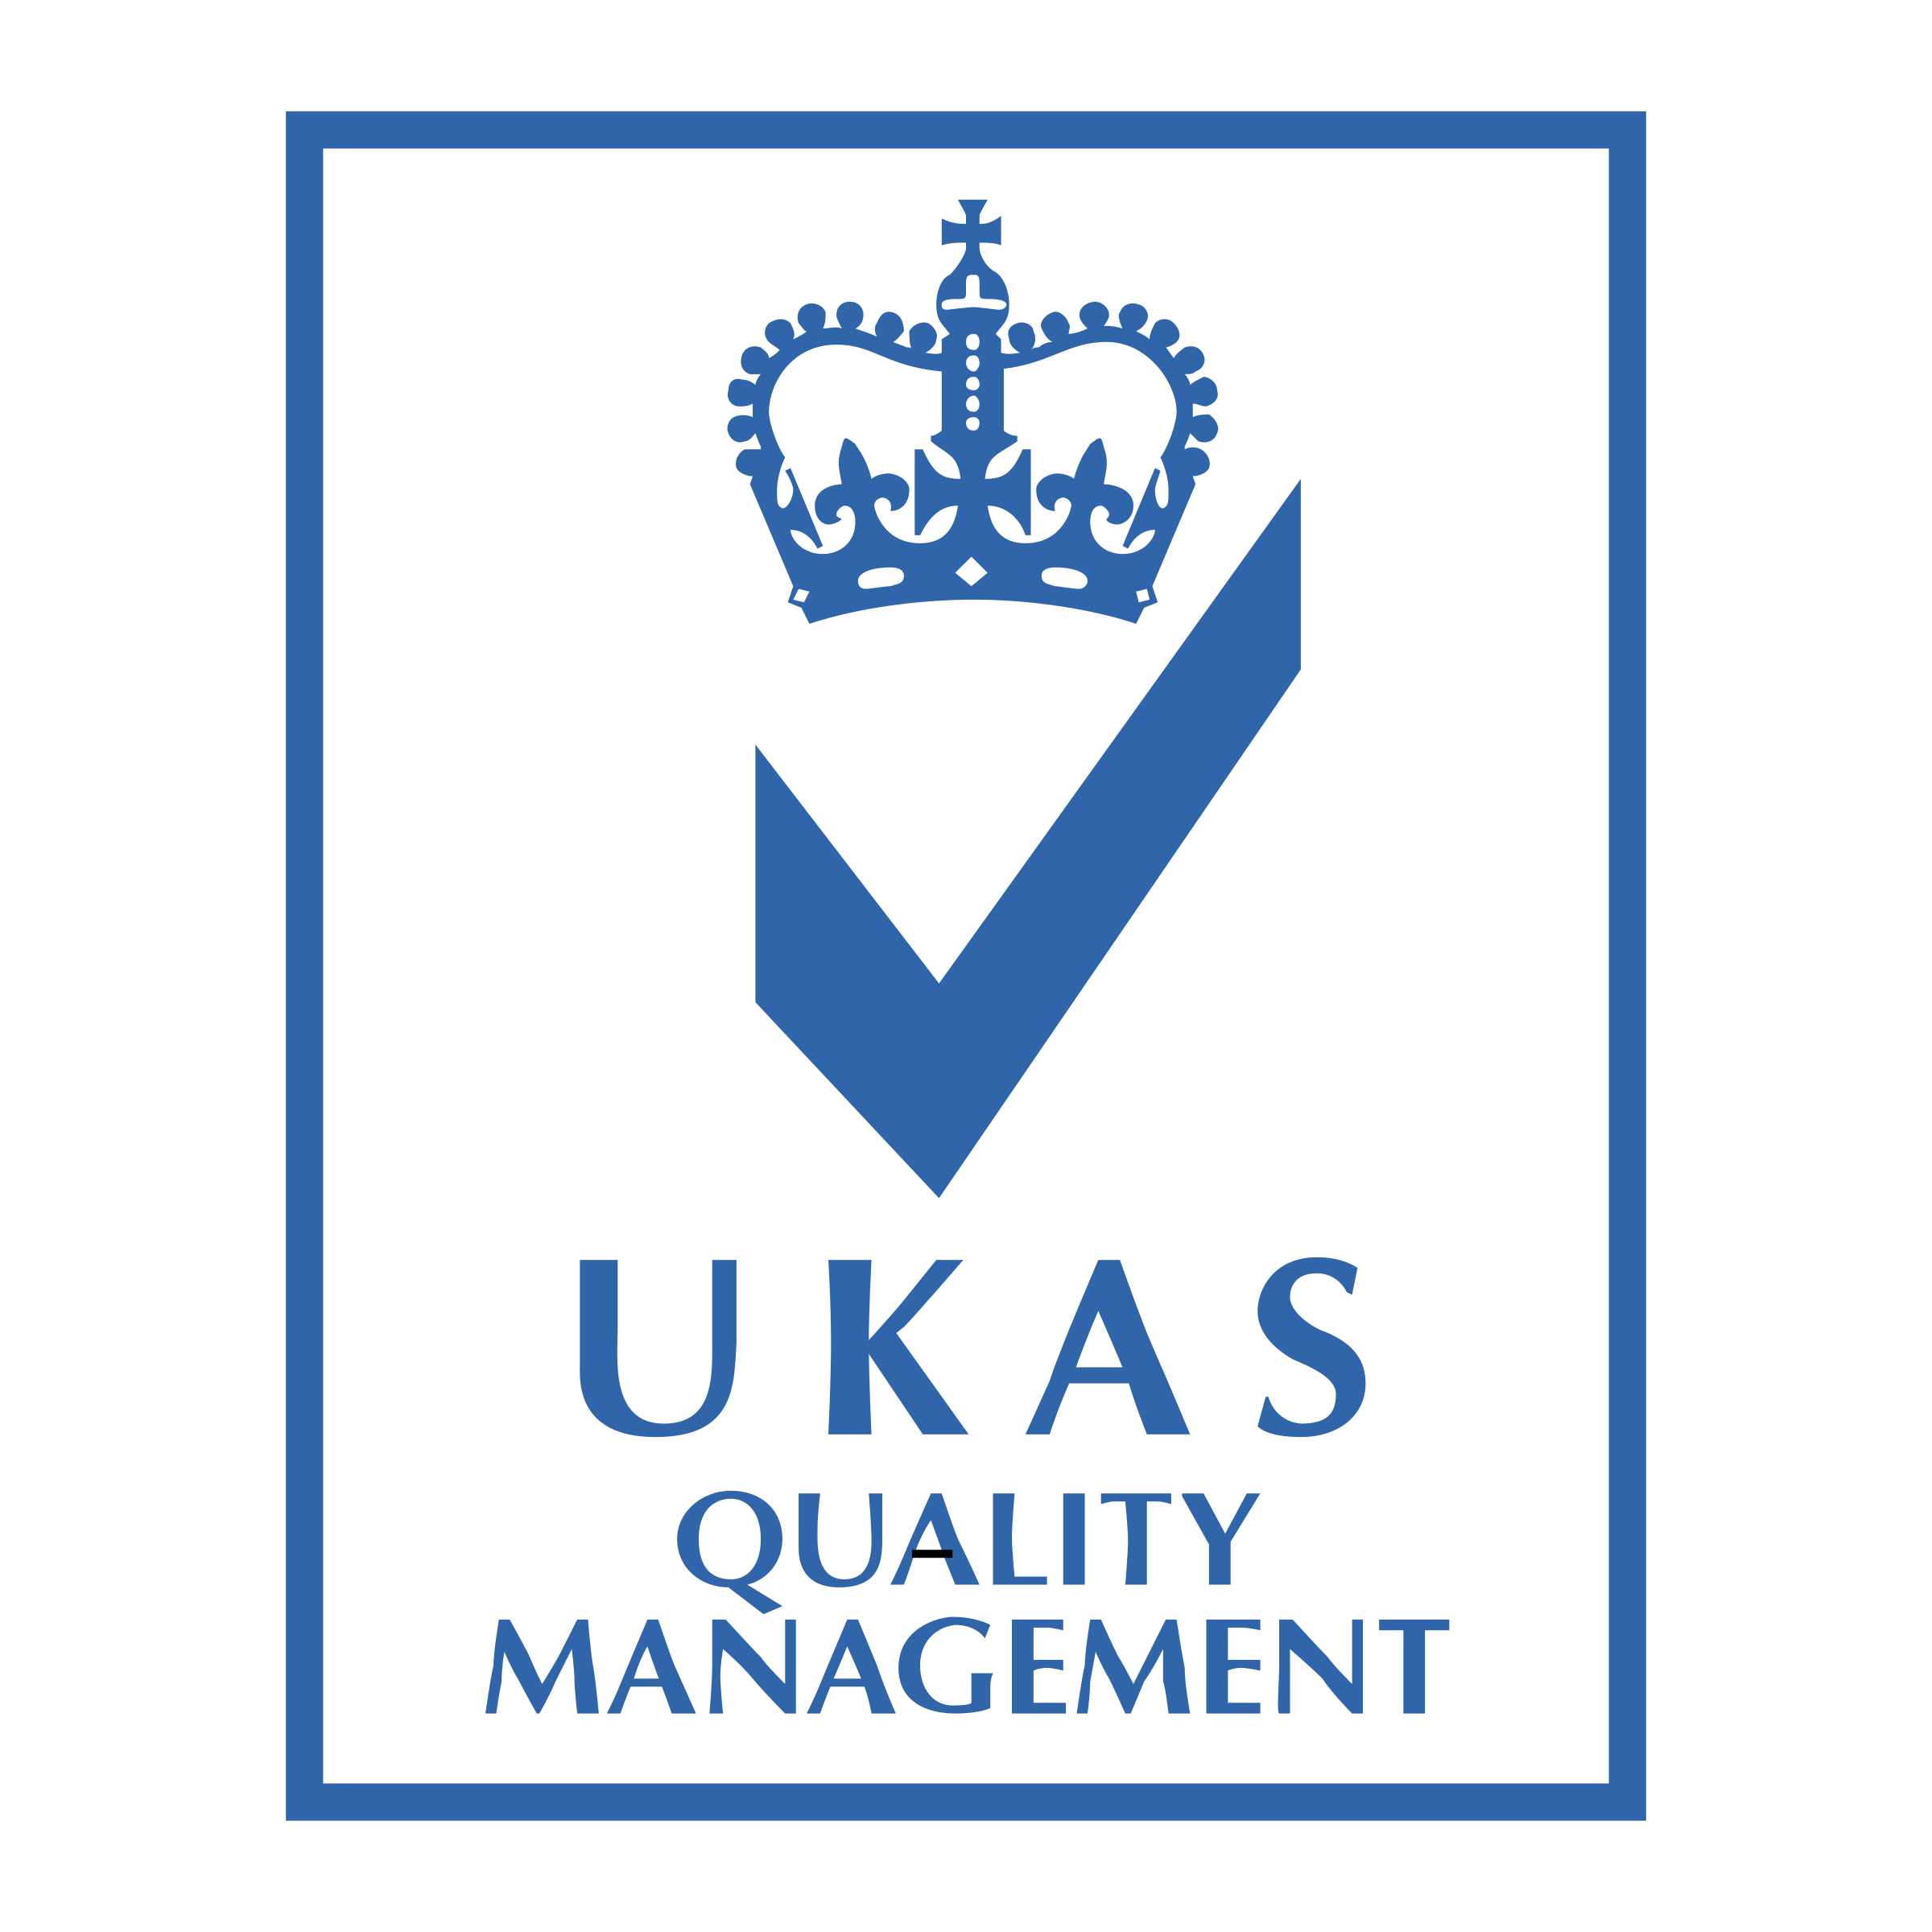 Vector quality. Ukas management logo png